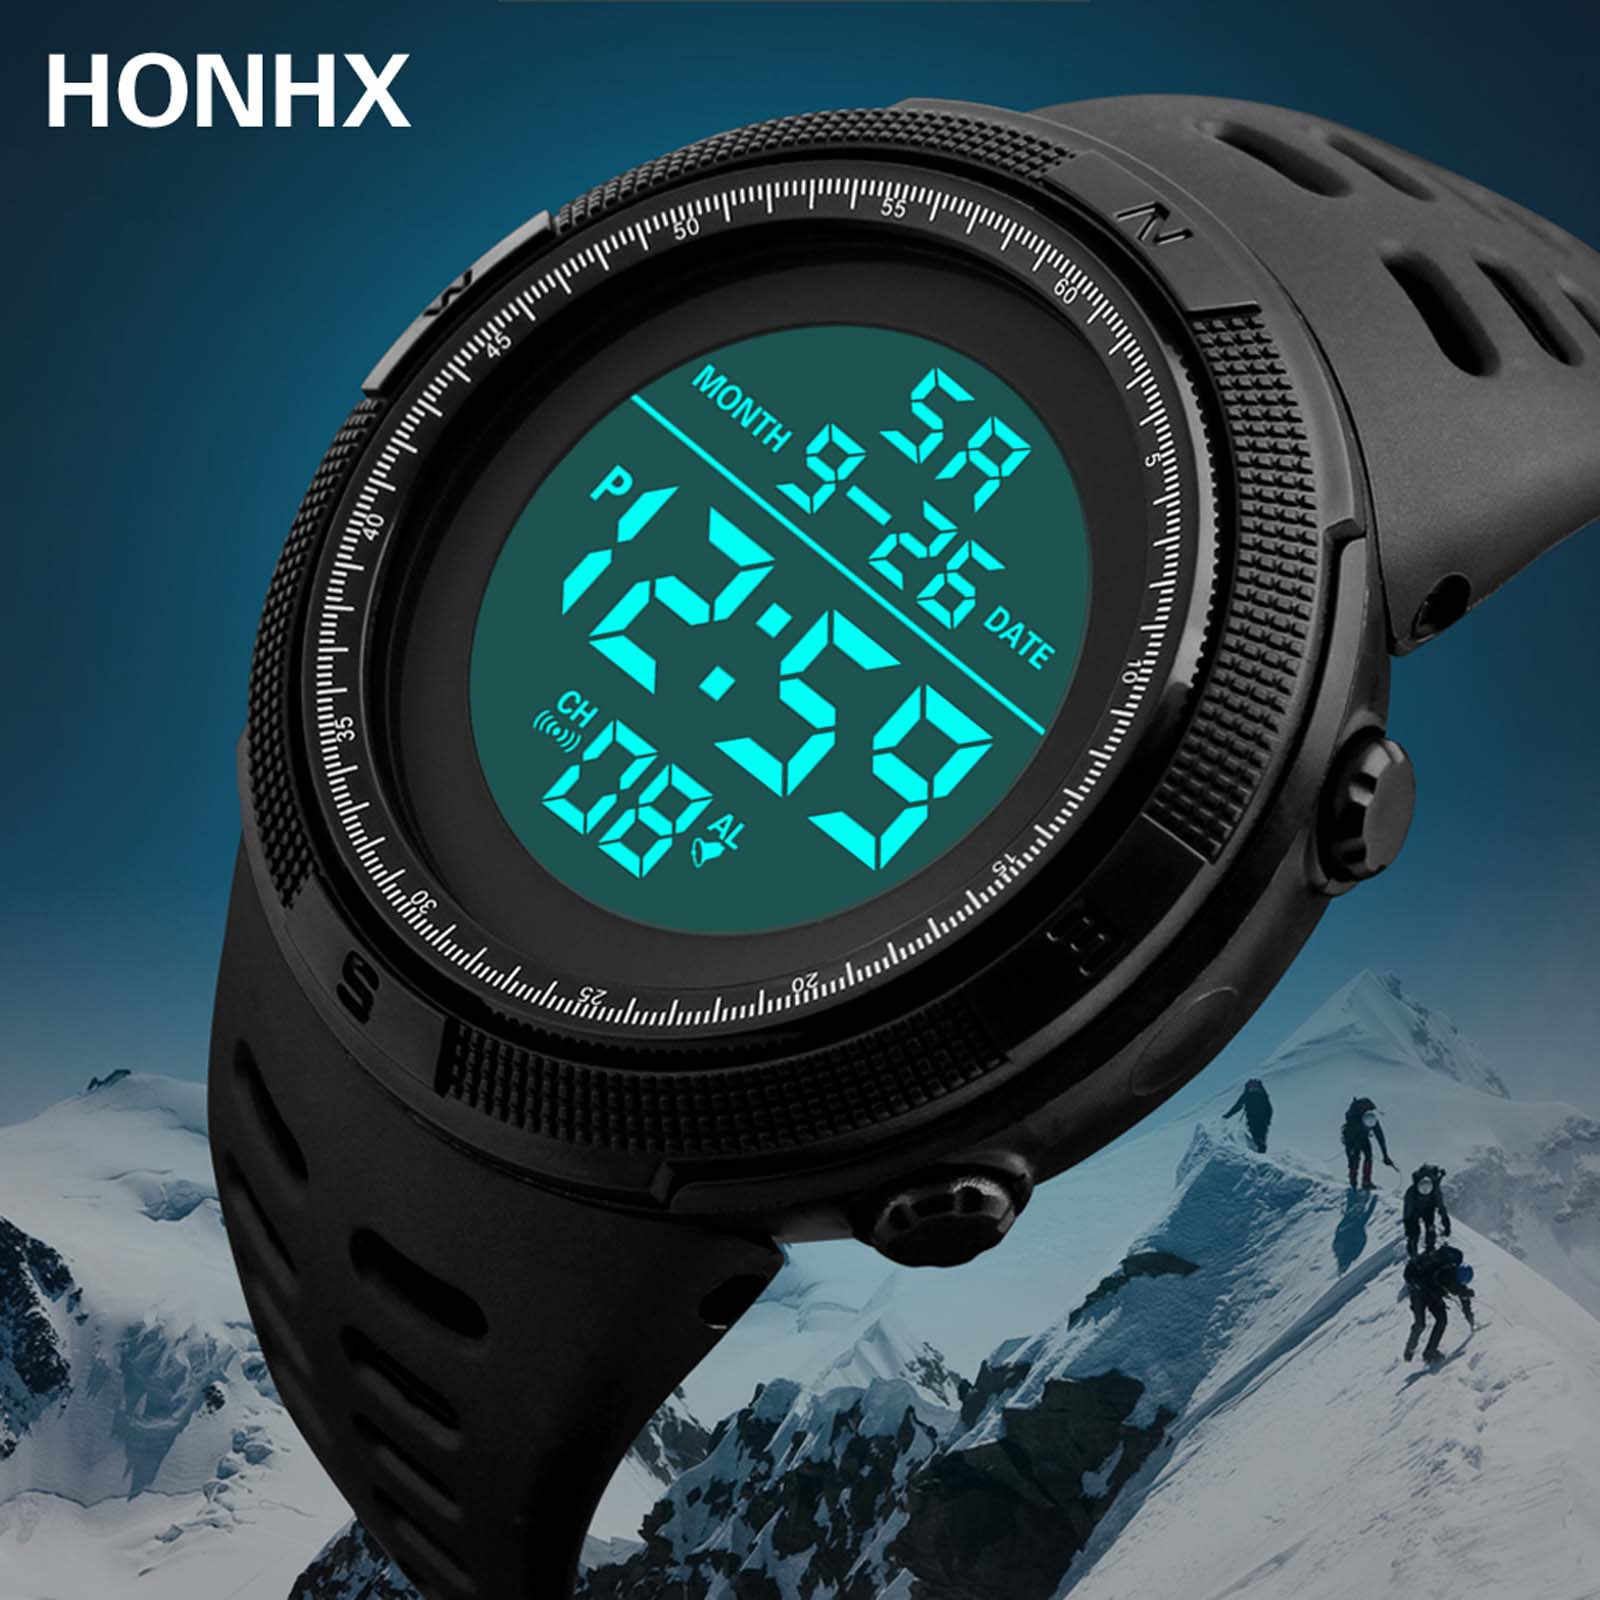 Multifunctionele Mannen Digitale Led Display Datum Waterdichte Horloges Mannelijke Outdoor Sport Elektronische Pols Klok Reloj Hombre Homme